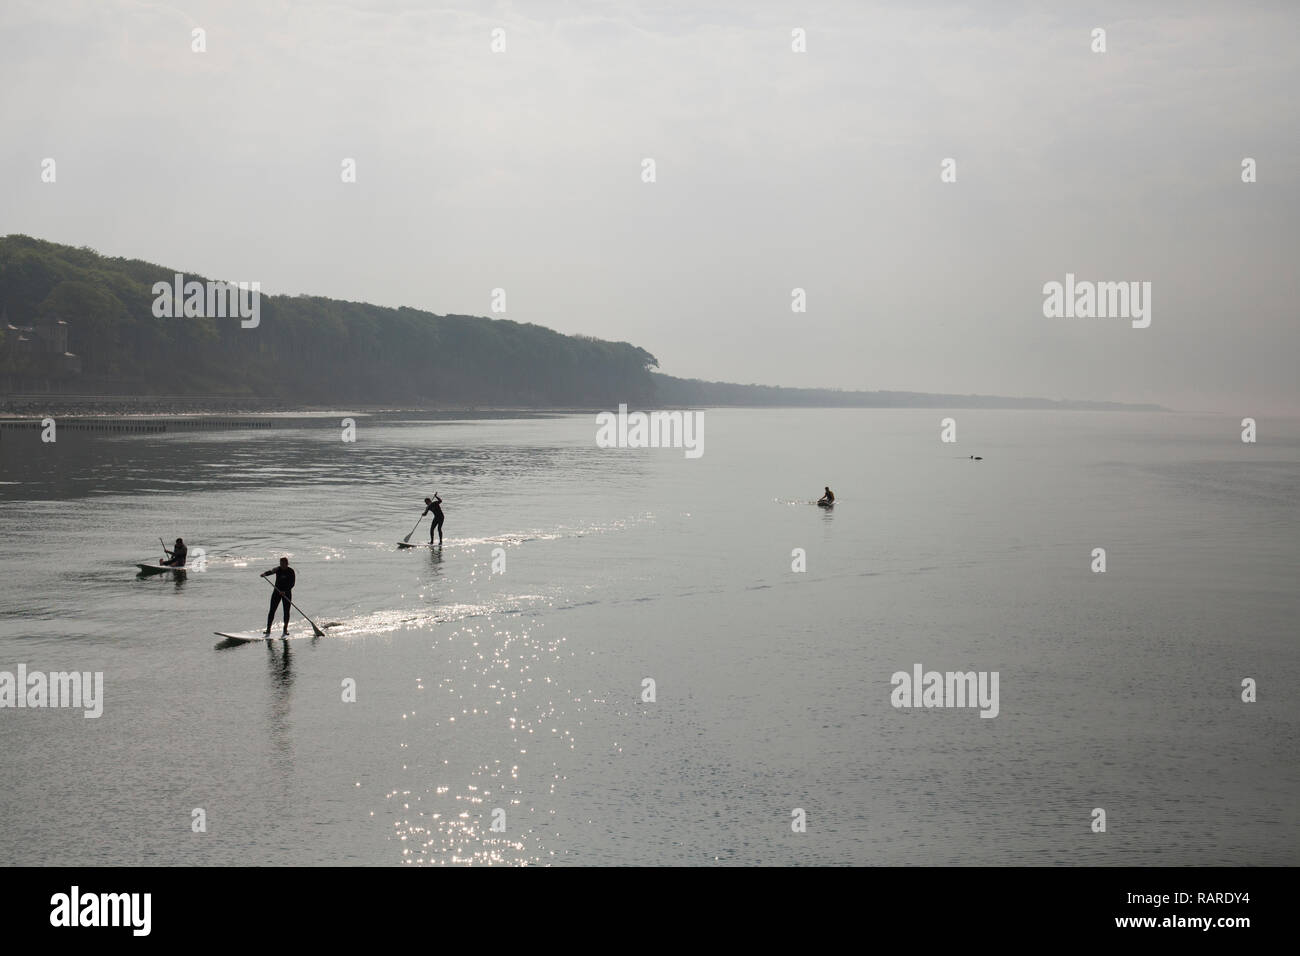 Heiligendamm, Mecklenburg-Vorpommern, Germany / May 05 2013: Four people stand up paddeling at the shore of the calm northern sea. Stock Photo